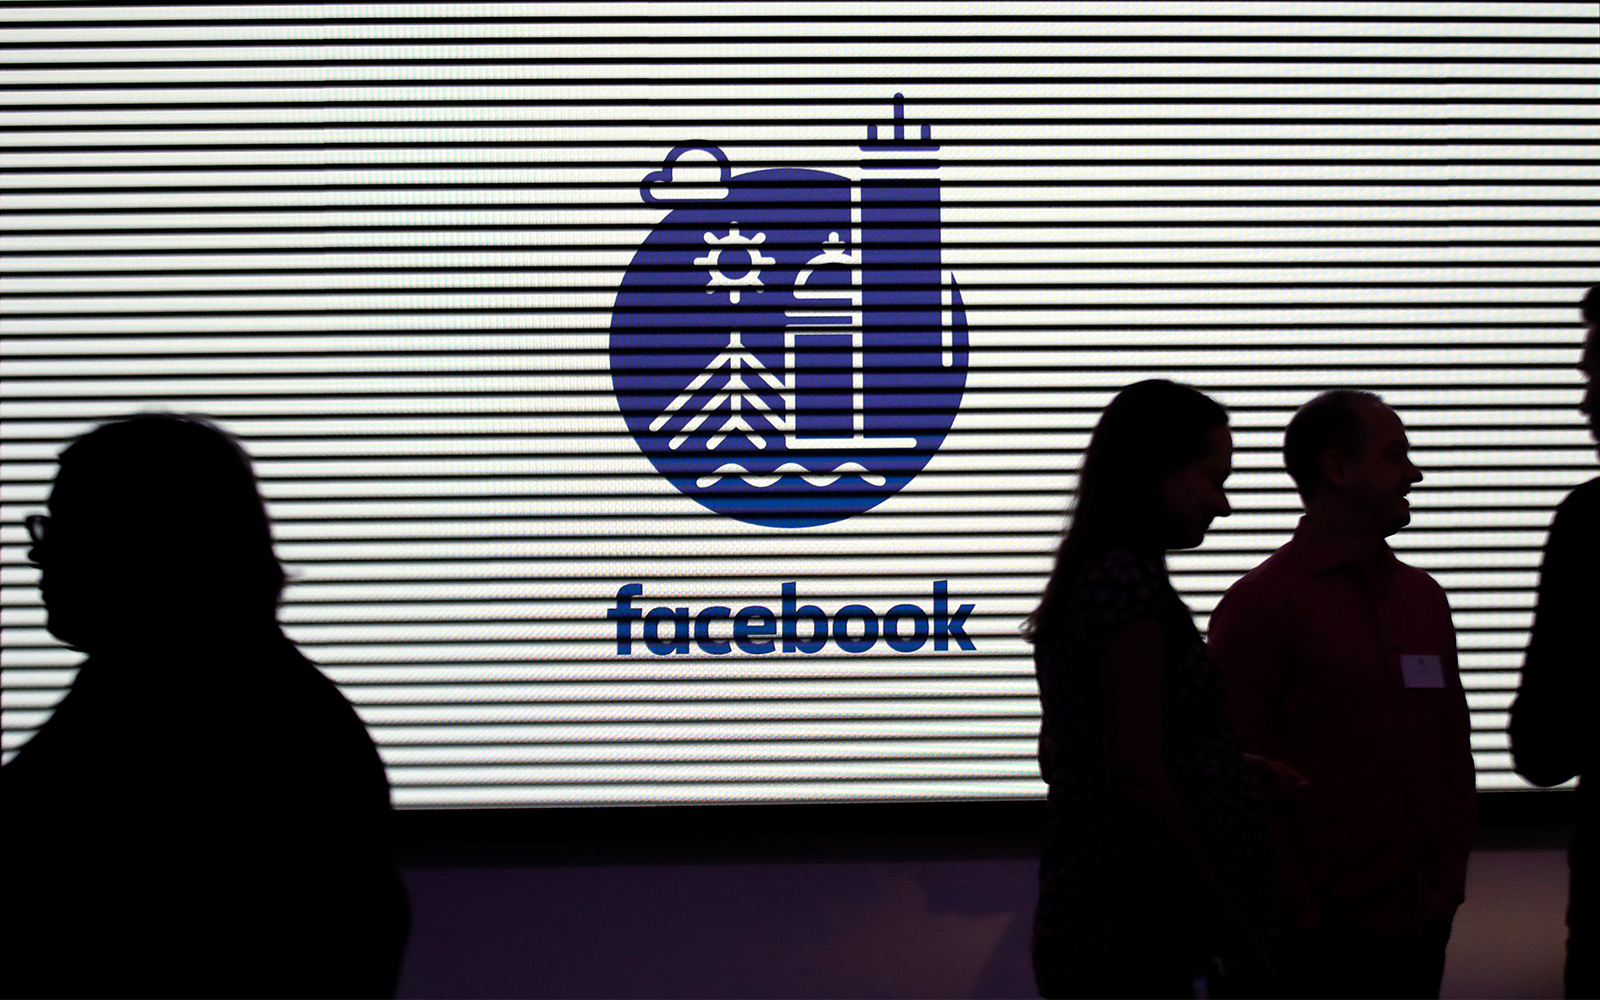 Most Facebook users aren't aware of the social network's targeted ad practices